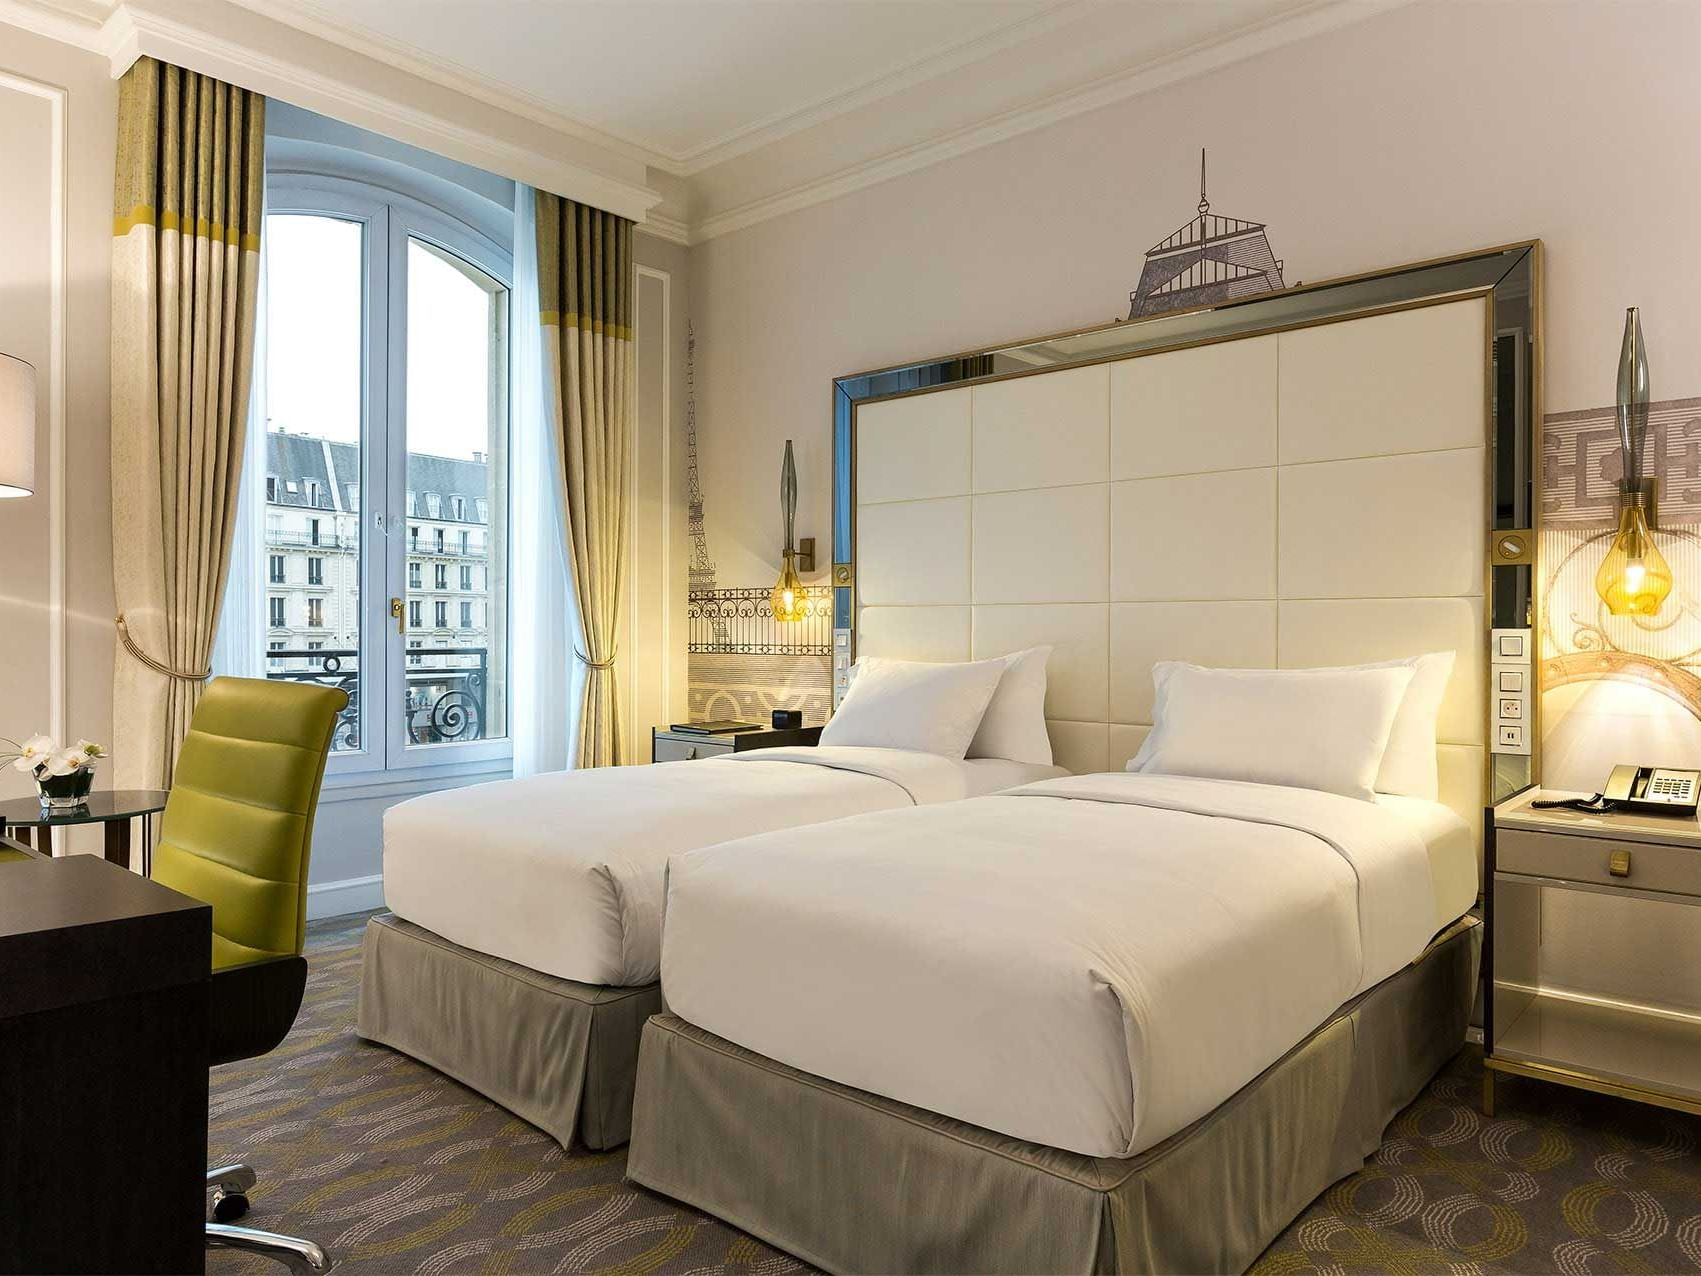 Bed & furniture in Twin Deluxe Room at Hilton Paris Opera Hotel